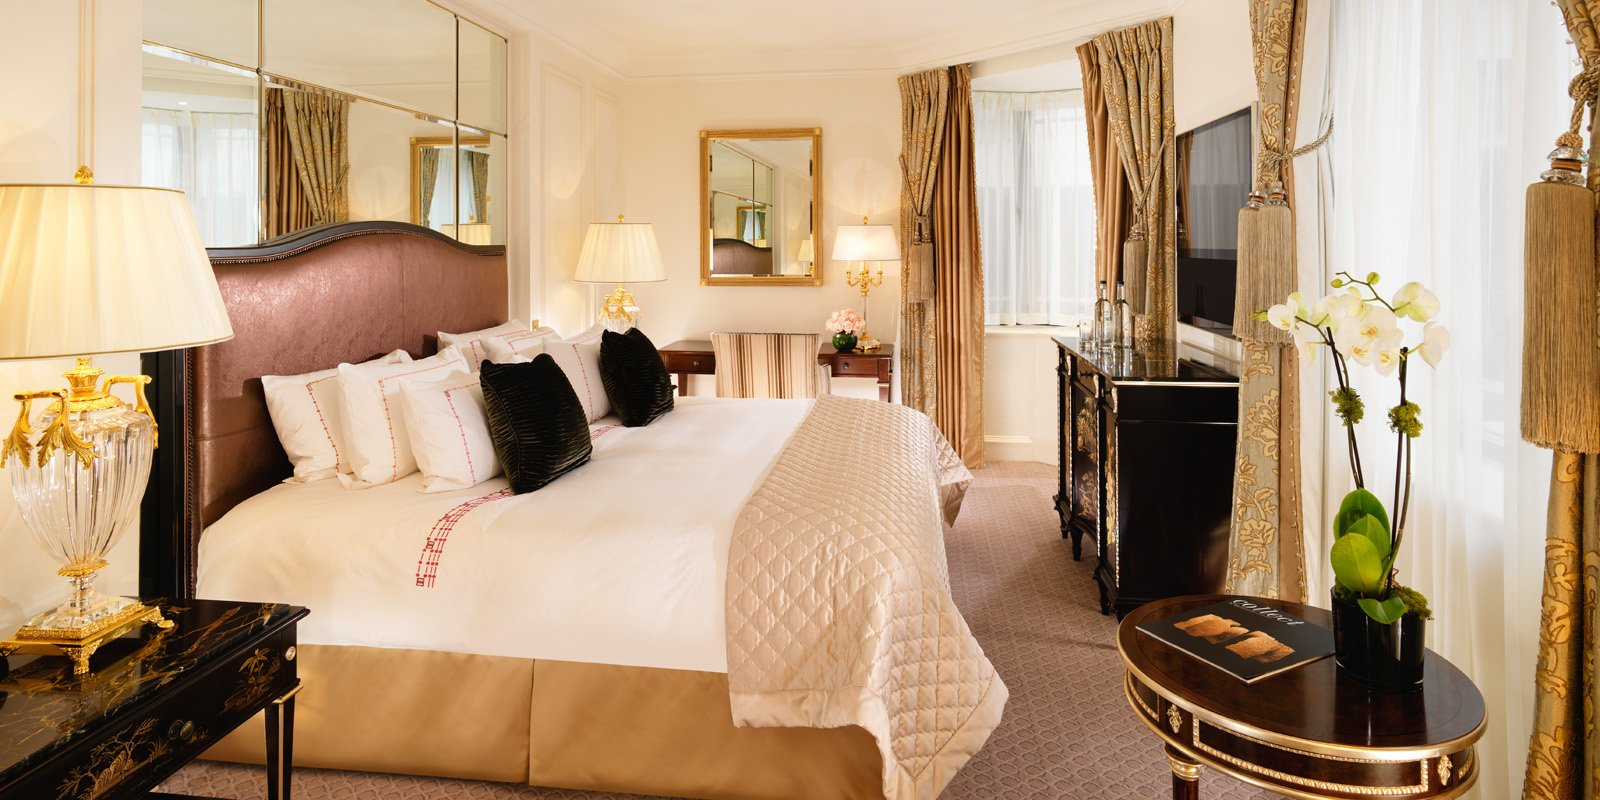 Decorated with bright florals and antique dark wood furniture, the Mayfair Suites overlook the beautiful neighbourhood after which they are named.